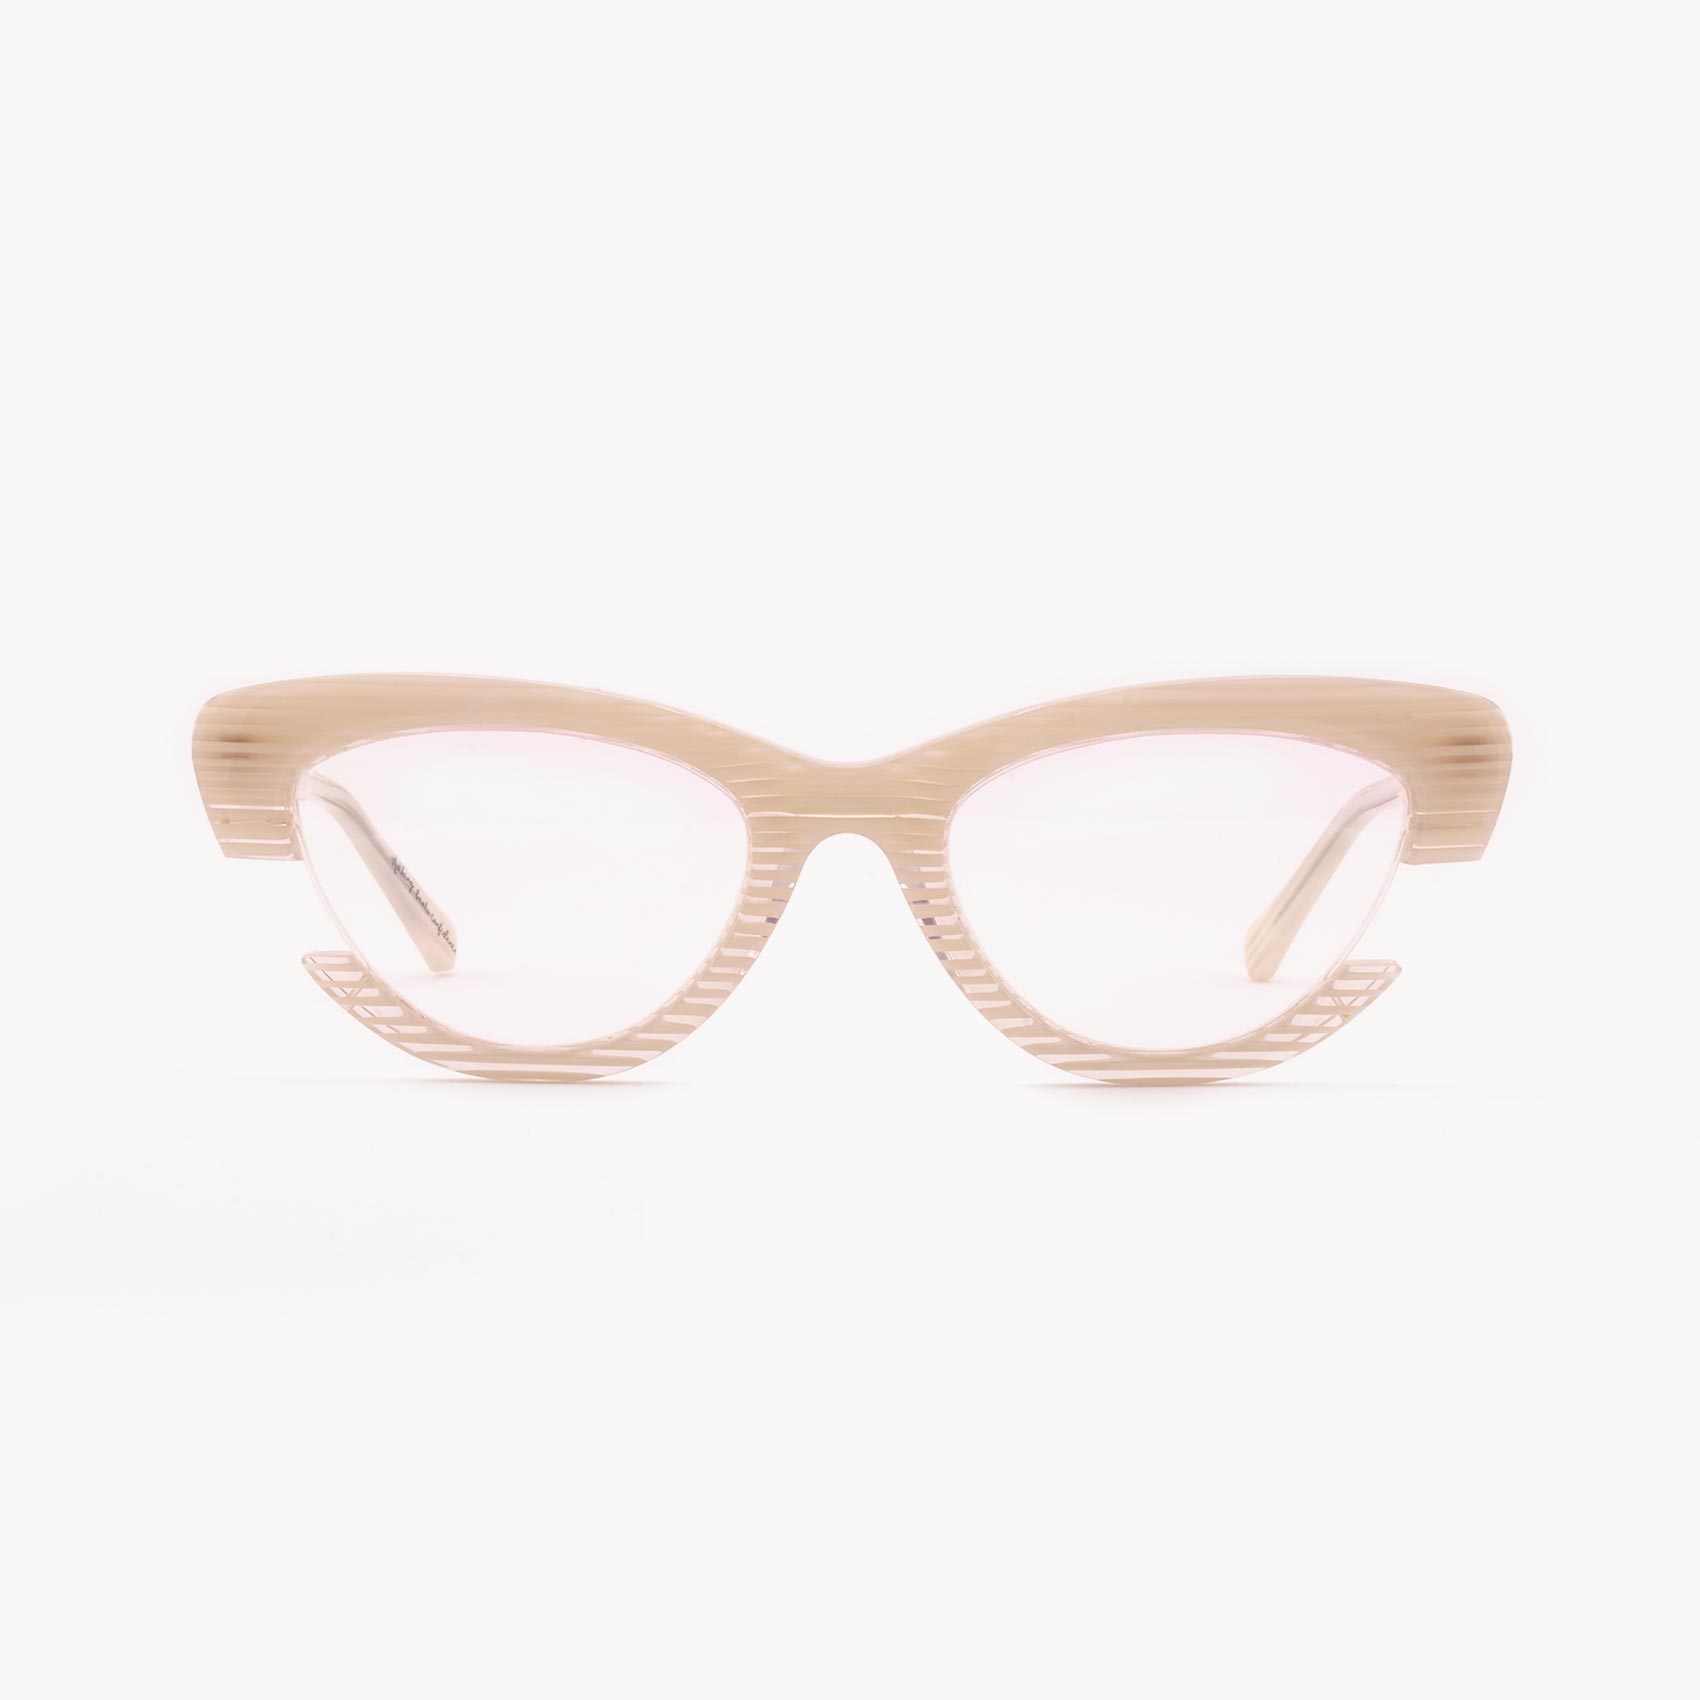 Proud eyewear Jennifer C2 F gafas de acetato mujer cat eye